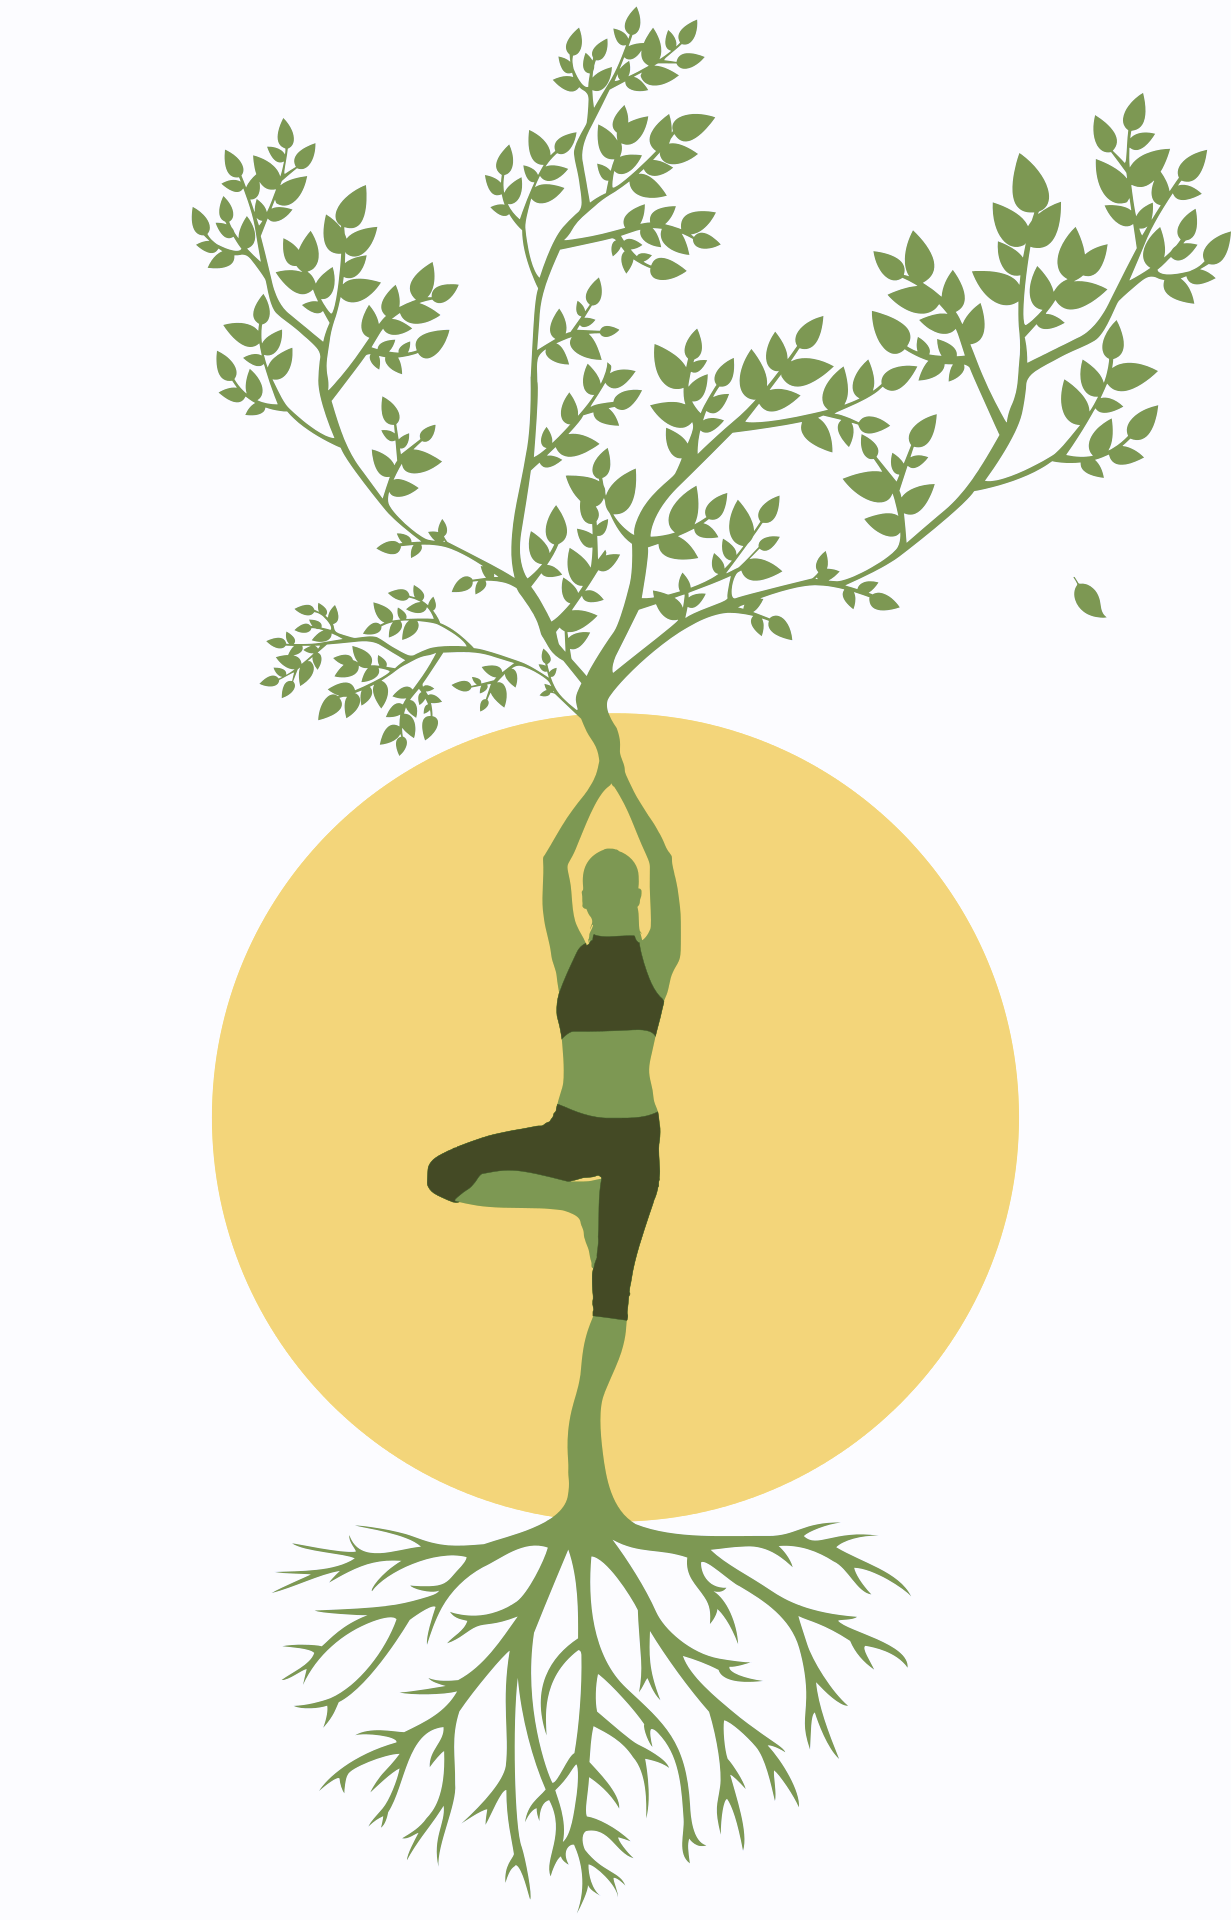 woman with roots for legs and branches for arms, to represent root chakra